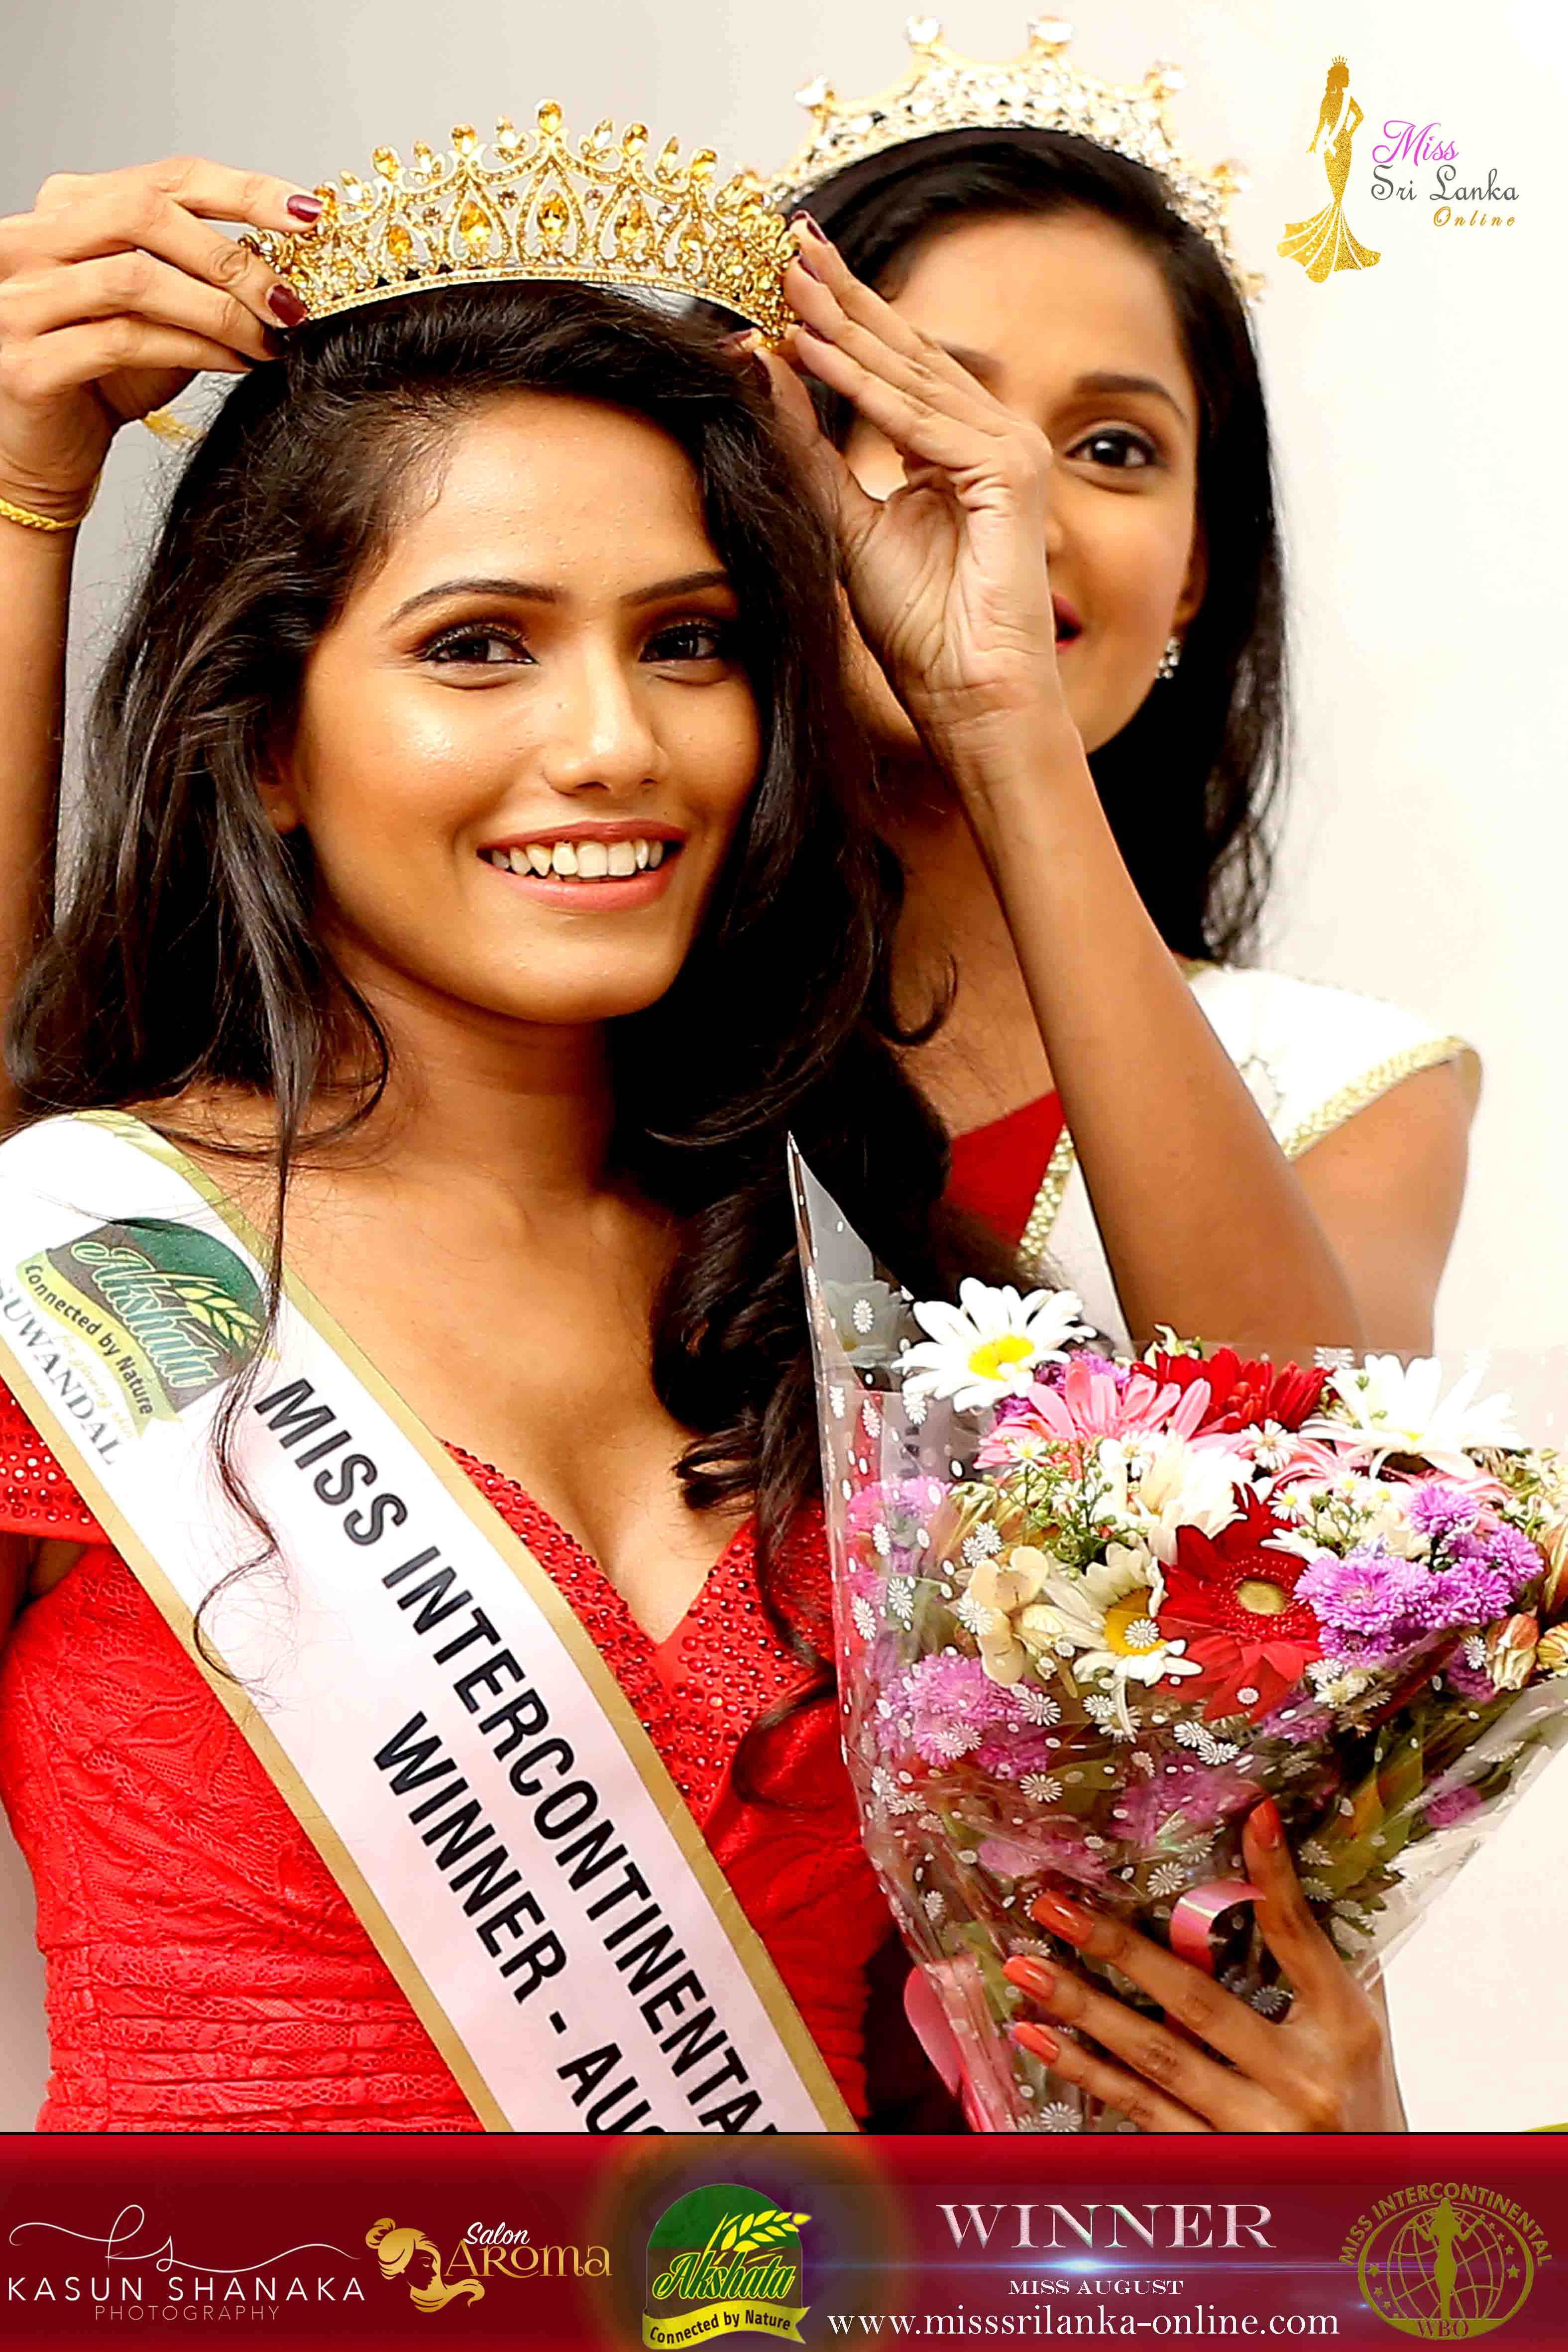 dinithi-akshata-miss sri lanka-suwandal rice-traditional rice-roshan perera-sewwandi-miss intercontinental